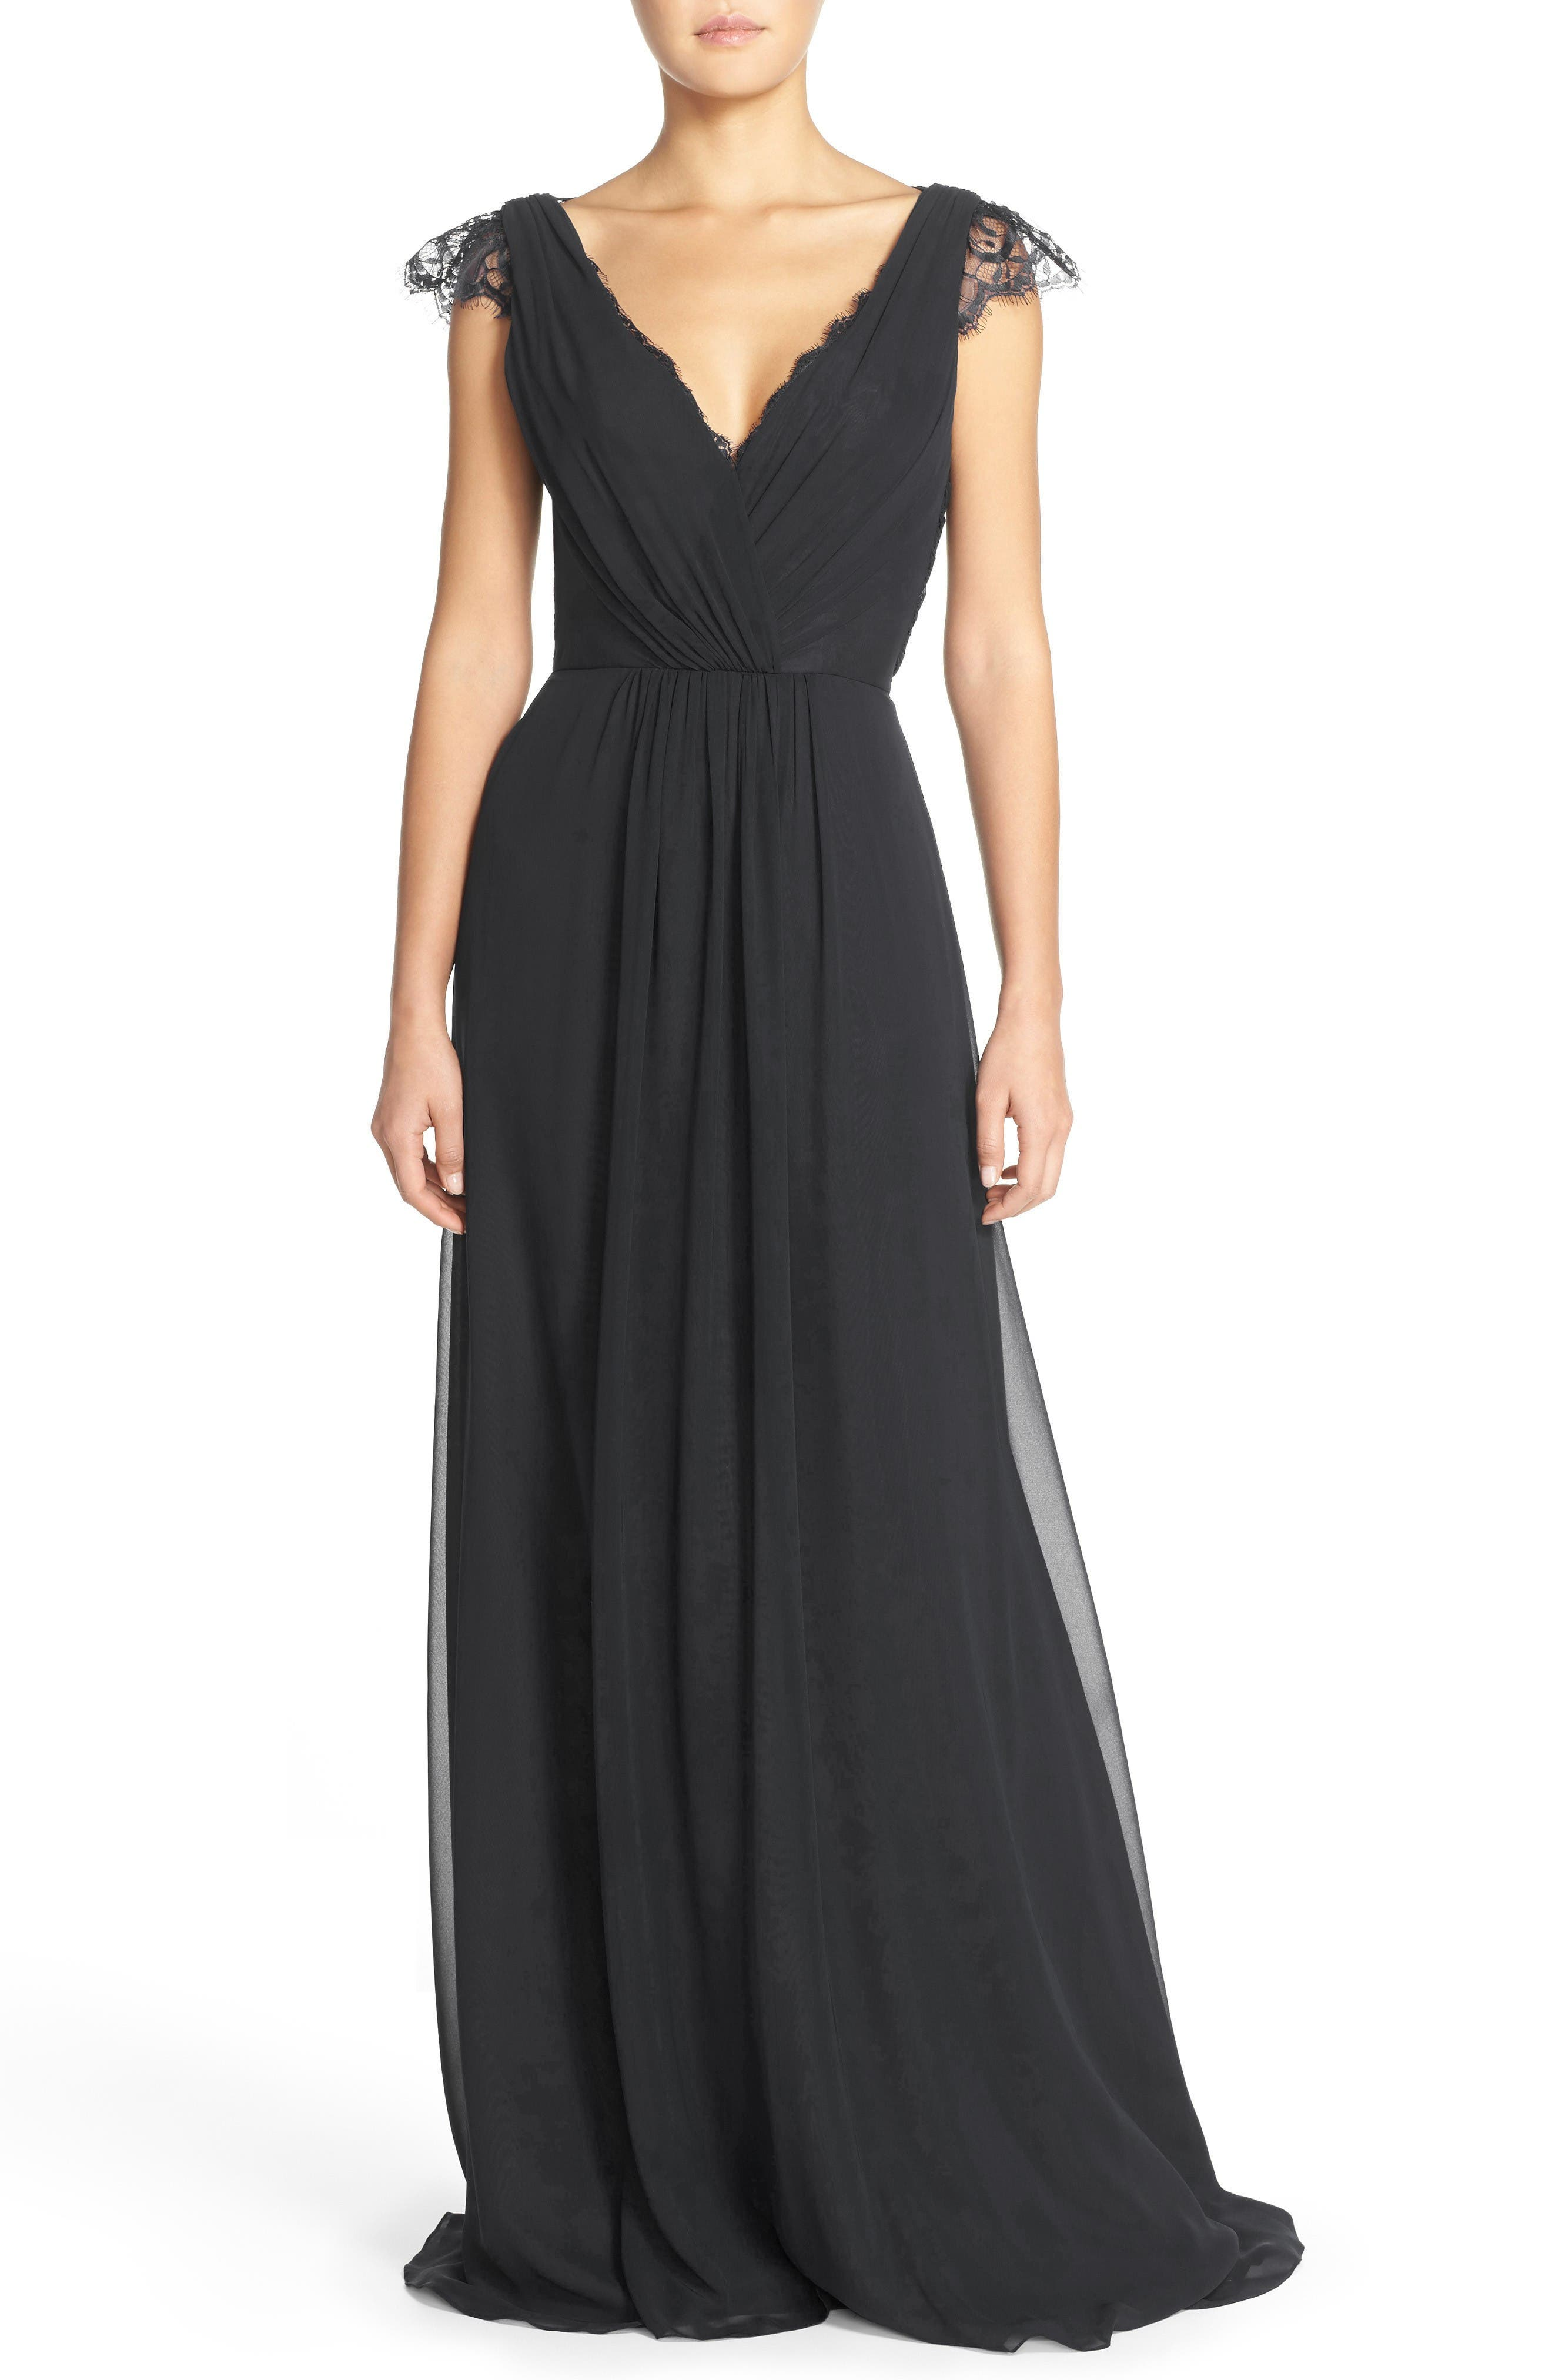 Alternate Image 1 Selected - Hayley Paige Occasions Lace & Chiffon Cap Sleeve Gown